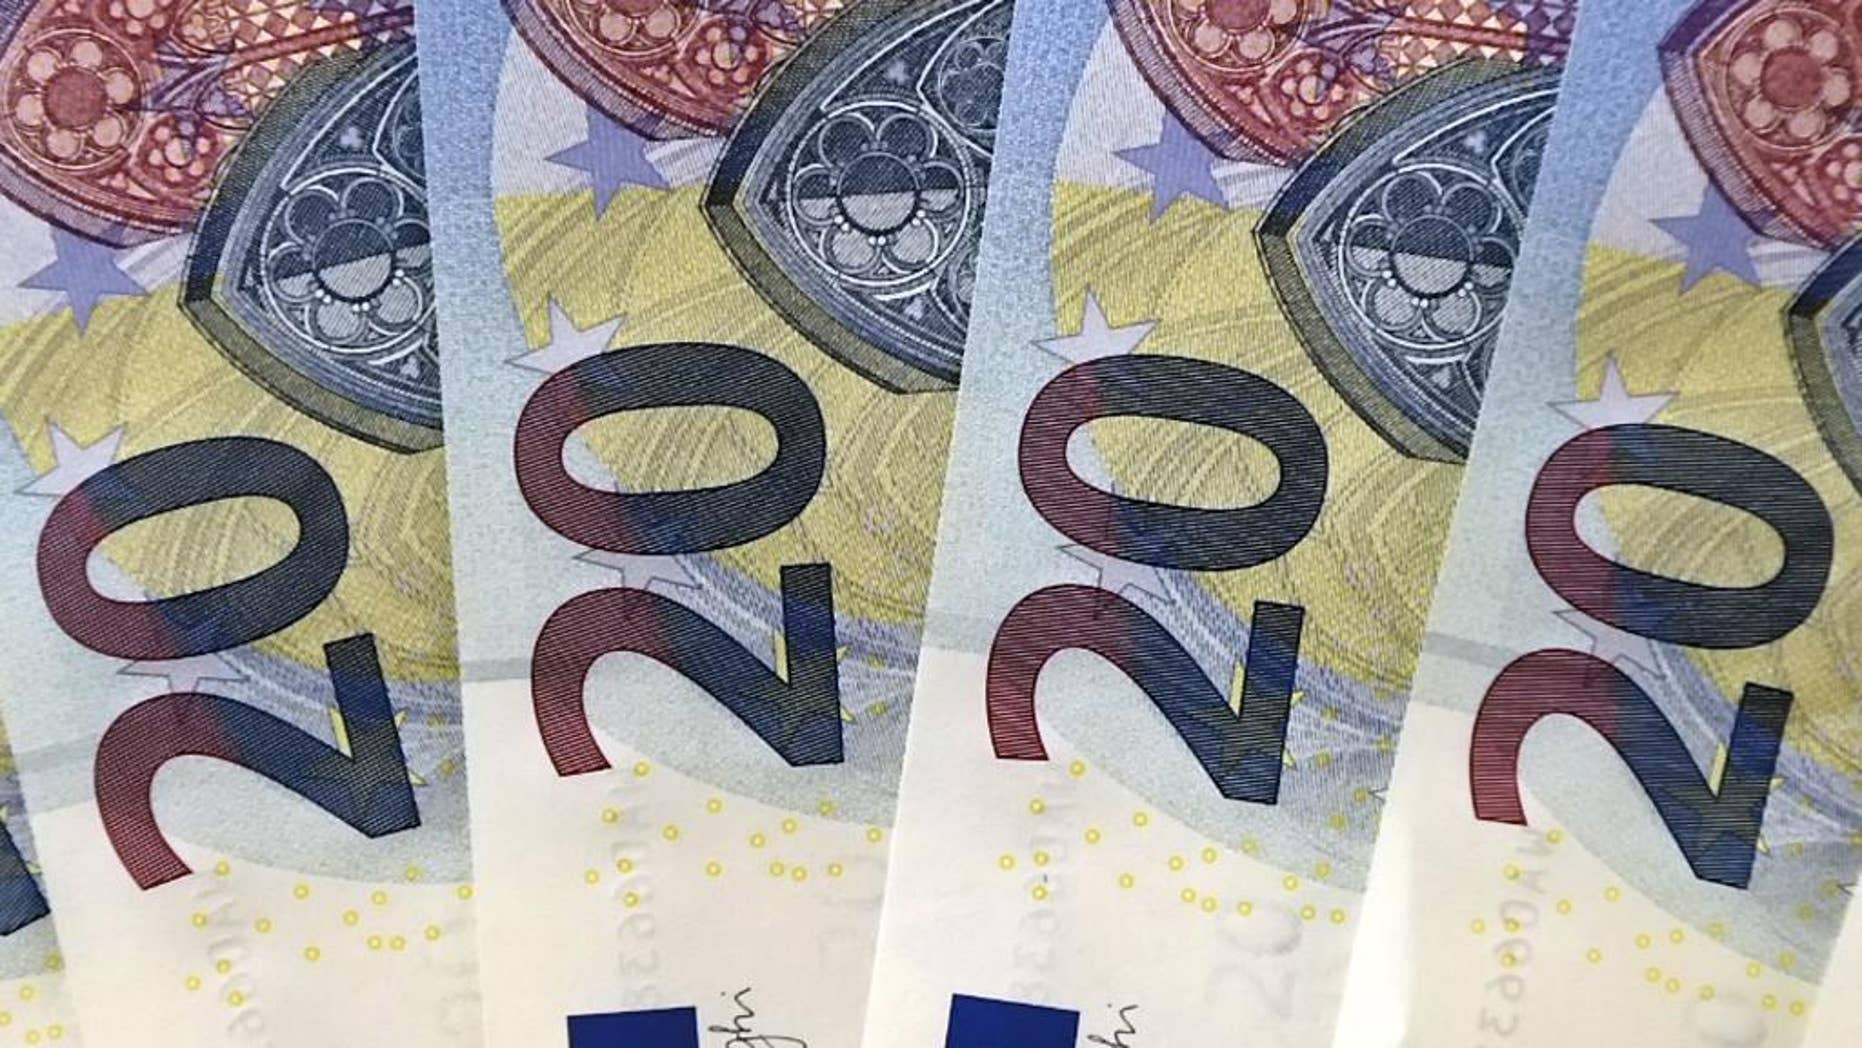 FILE - In this Tuesday, Oct. 27, 2015, file photo, new 20 euro banknotes are arranged for display during a news conference at the branch office of the German Federal Bank in Erfurt, Germany. No one is lining up to join the 19-country currency, and the next memberships, if any, will only be years down the road, certainly not in this decade. It marks a shift from a recent boom in membership, with seven countries joining in the past nine years, and reflects in part a growing wariness of forging closer economic ties. (AP Photo/Jens Meyer, File)